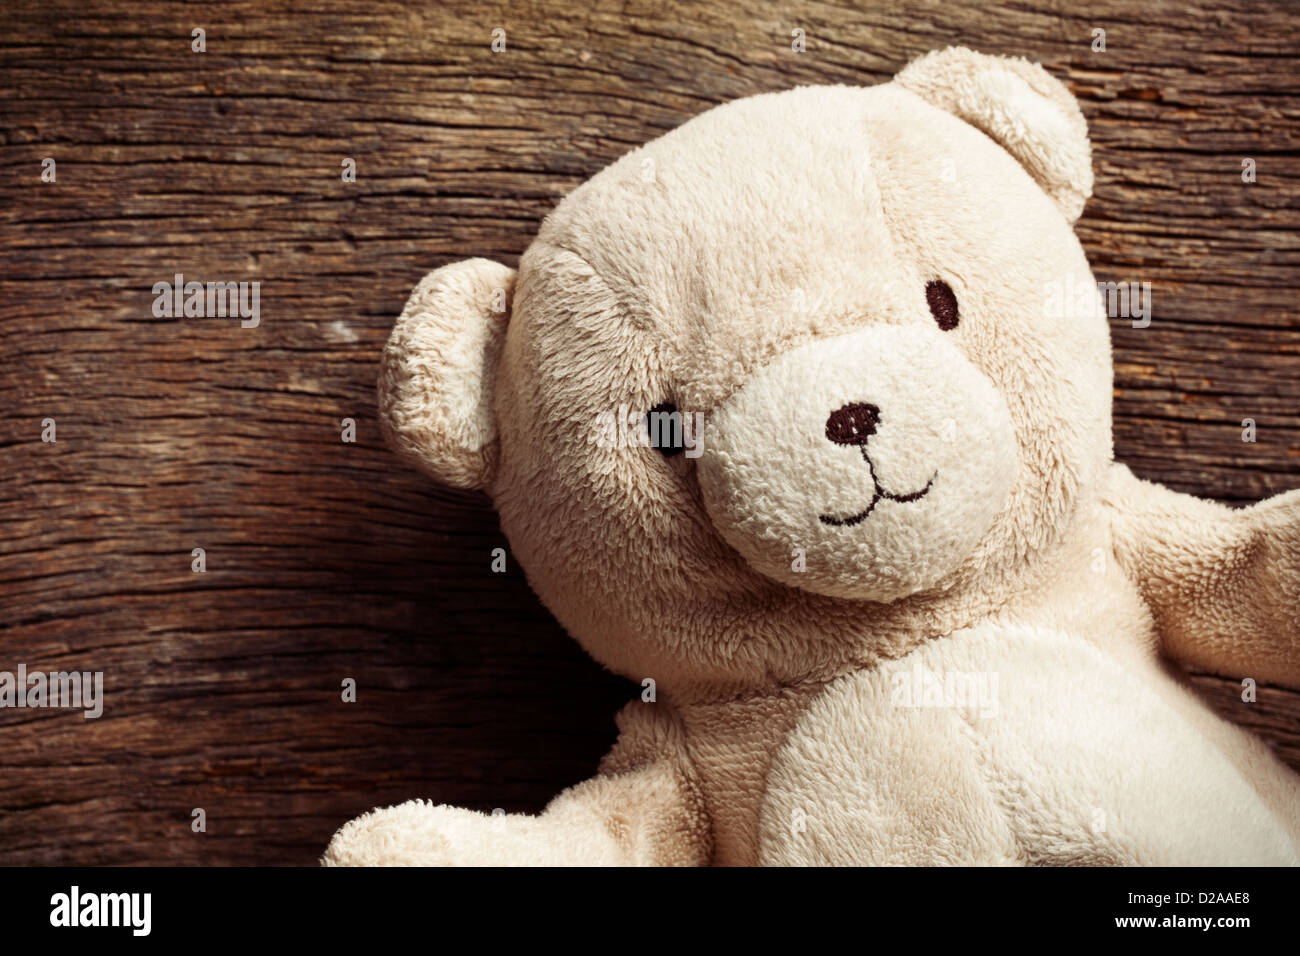 the teddy bear on old wooden background stock photo royalty free